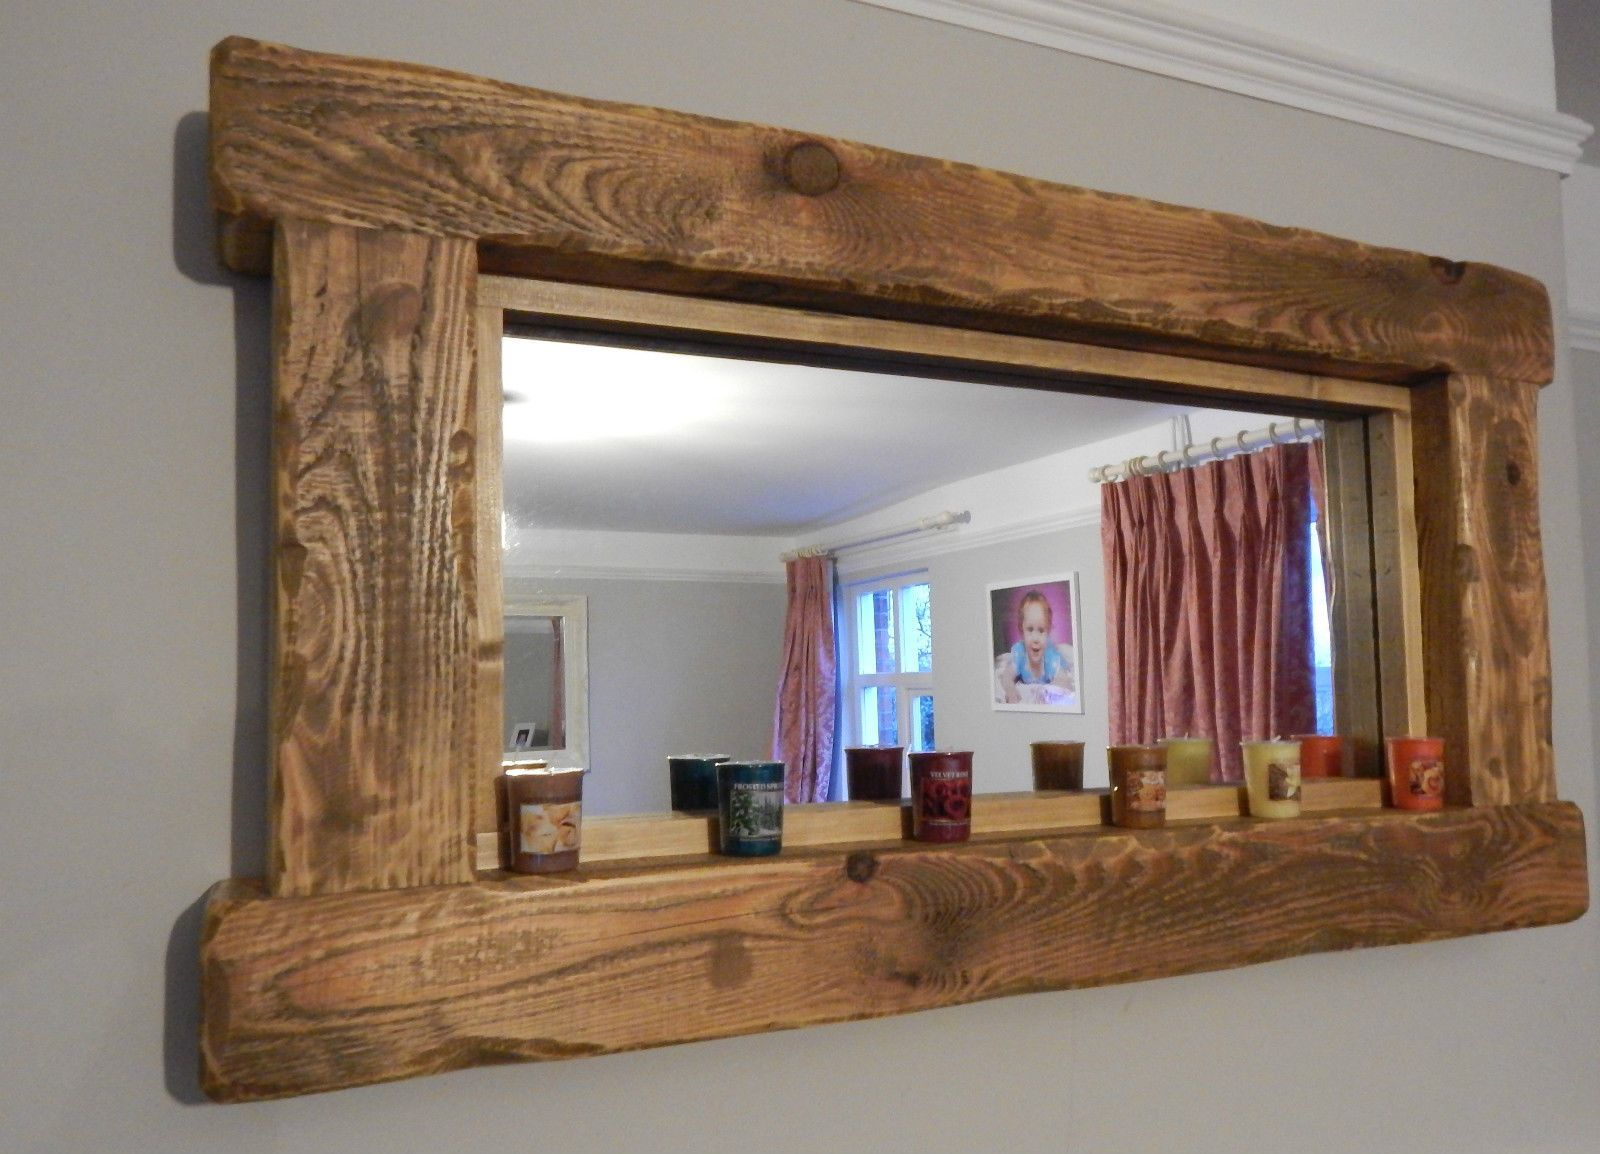 Chunky Rustic Reclaimed Wooden Mirror Tea Light Shelf Wall Furniture Storage In Home